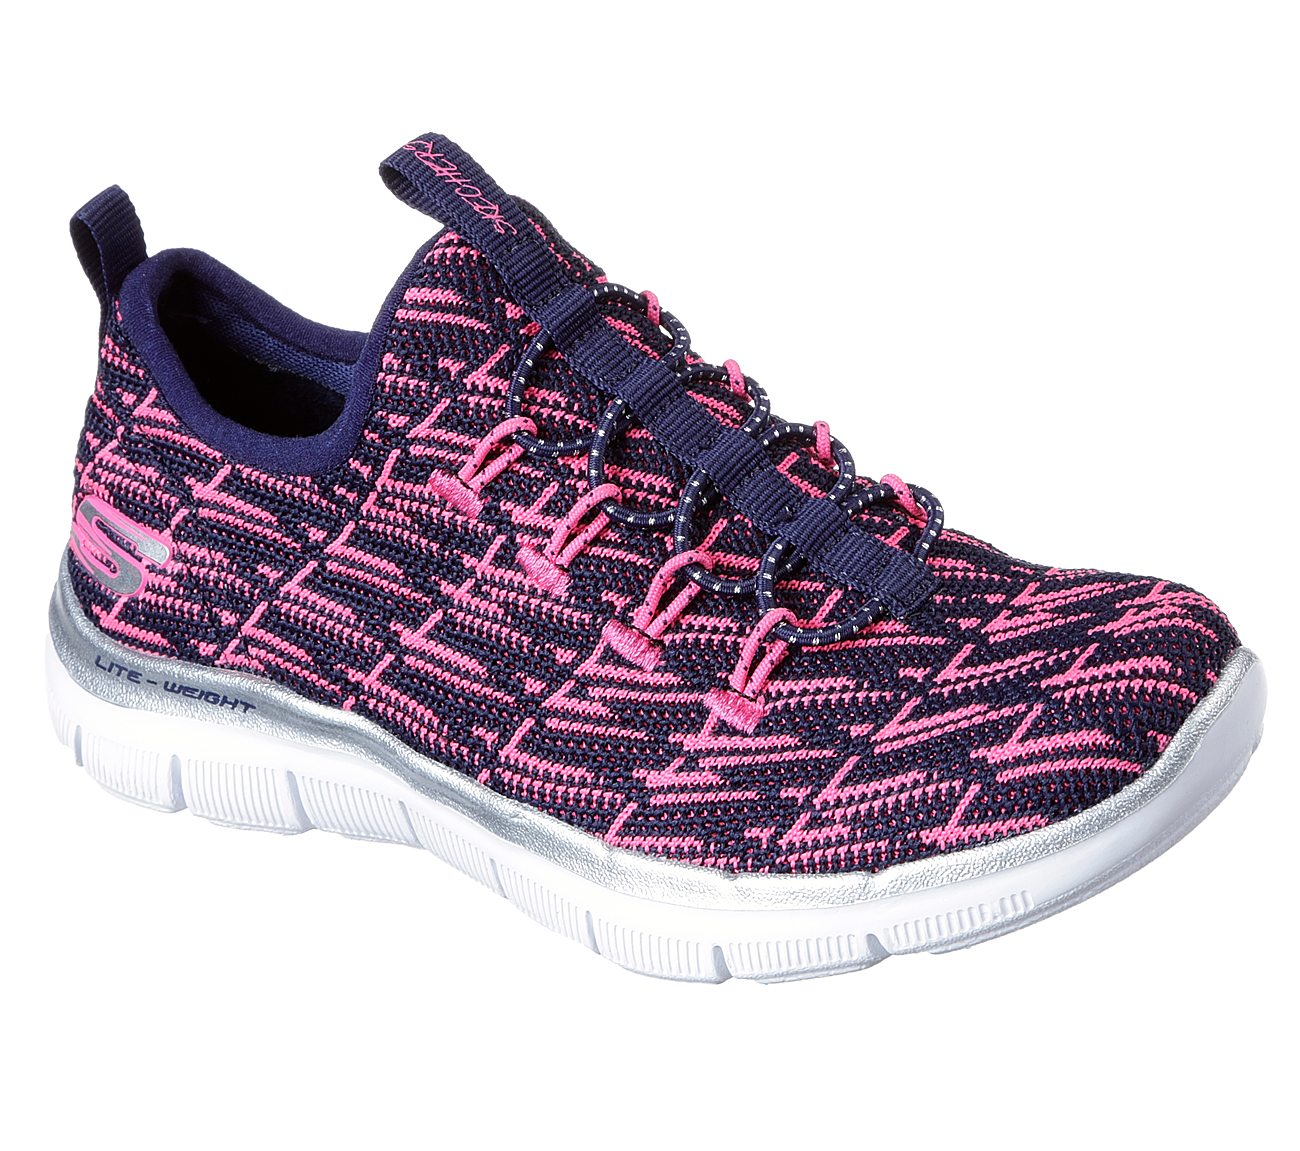 7bb06412eb10 Buy SKECHERS Skech Appeal 2.0 - Insights Flex Appeal Shoes only 55